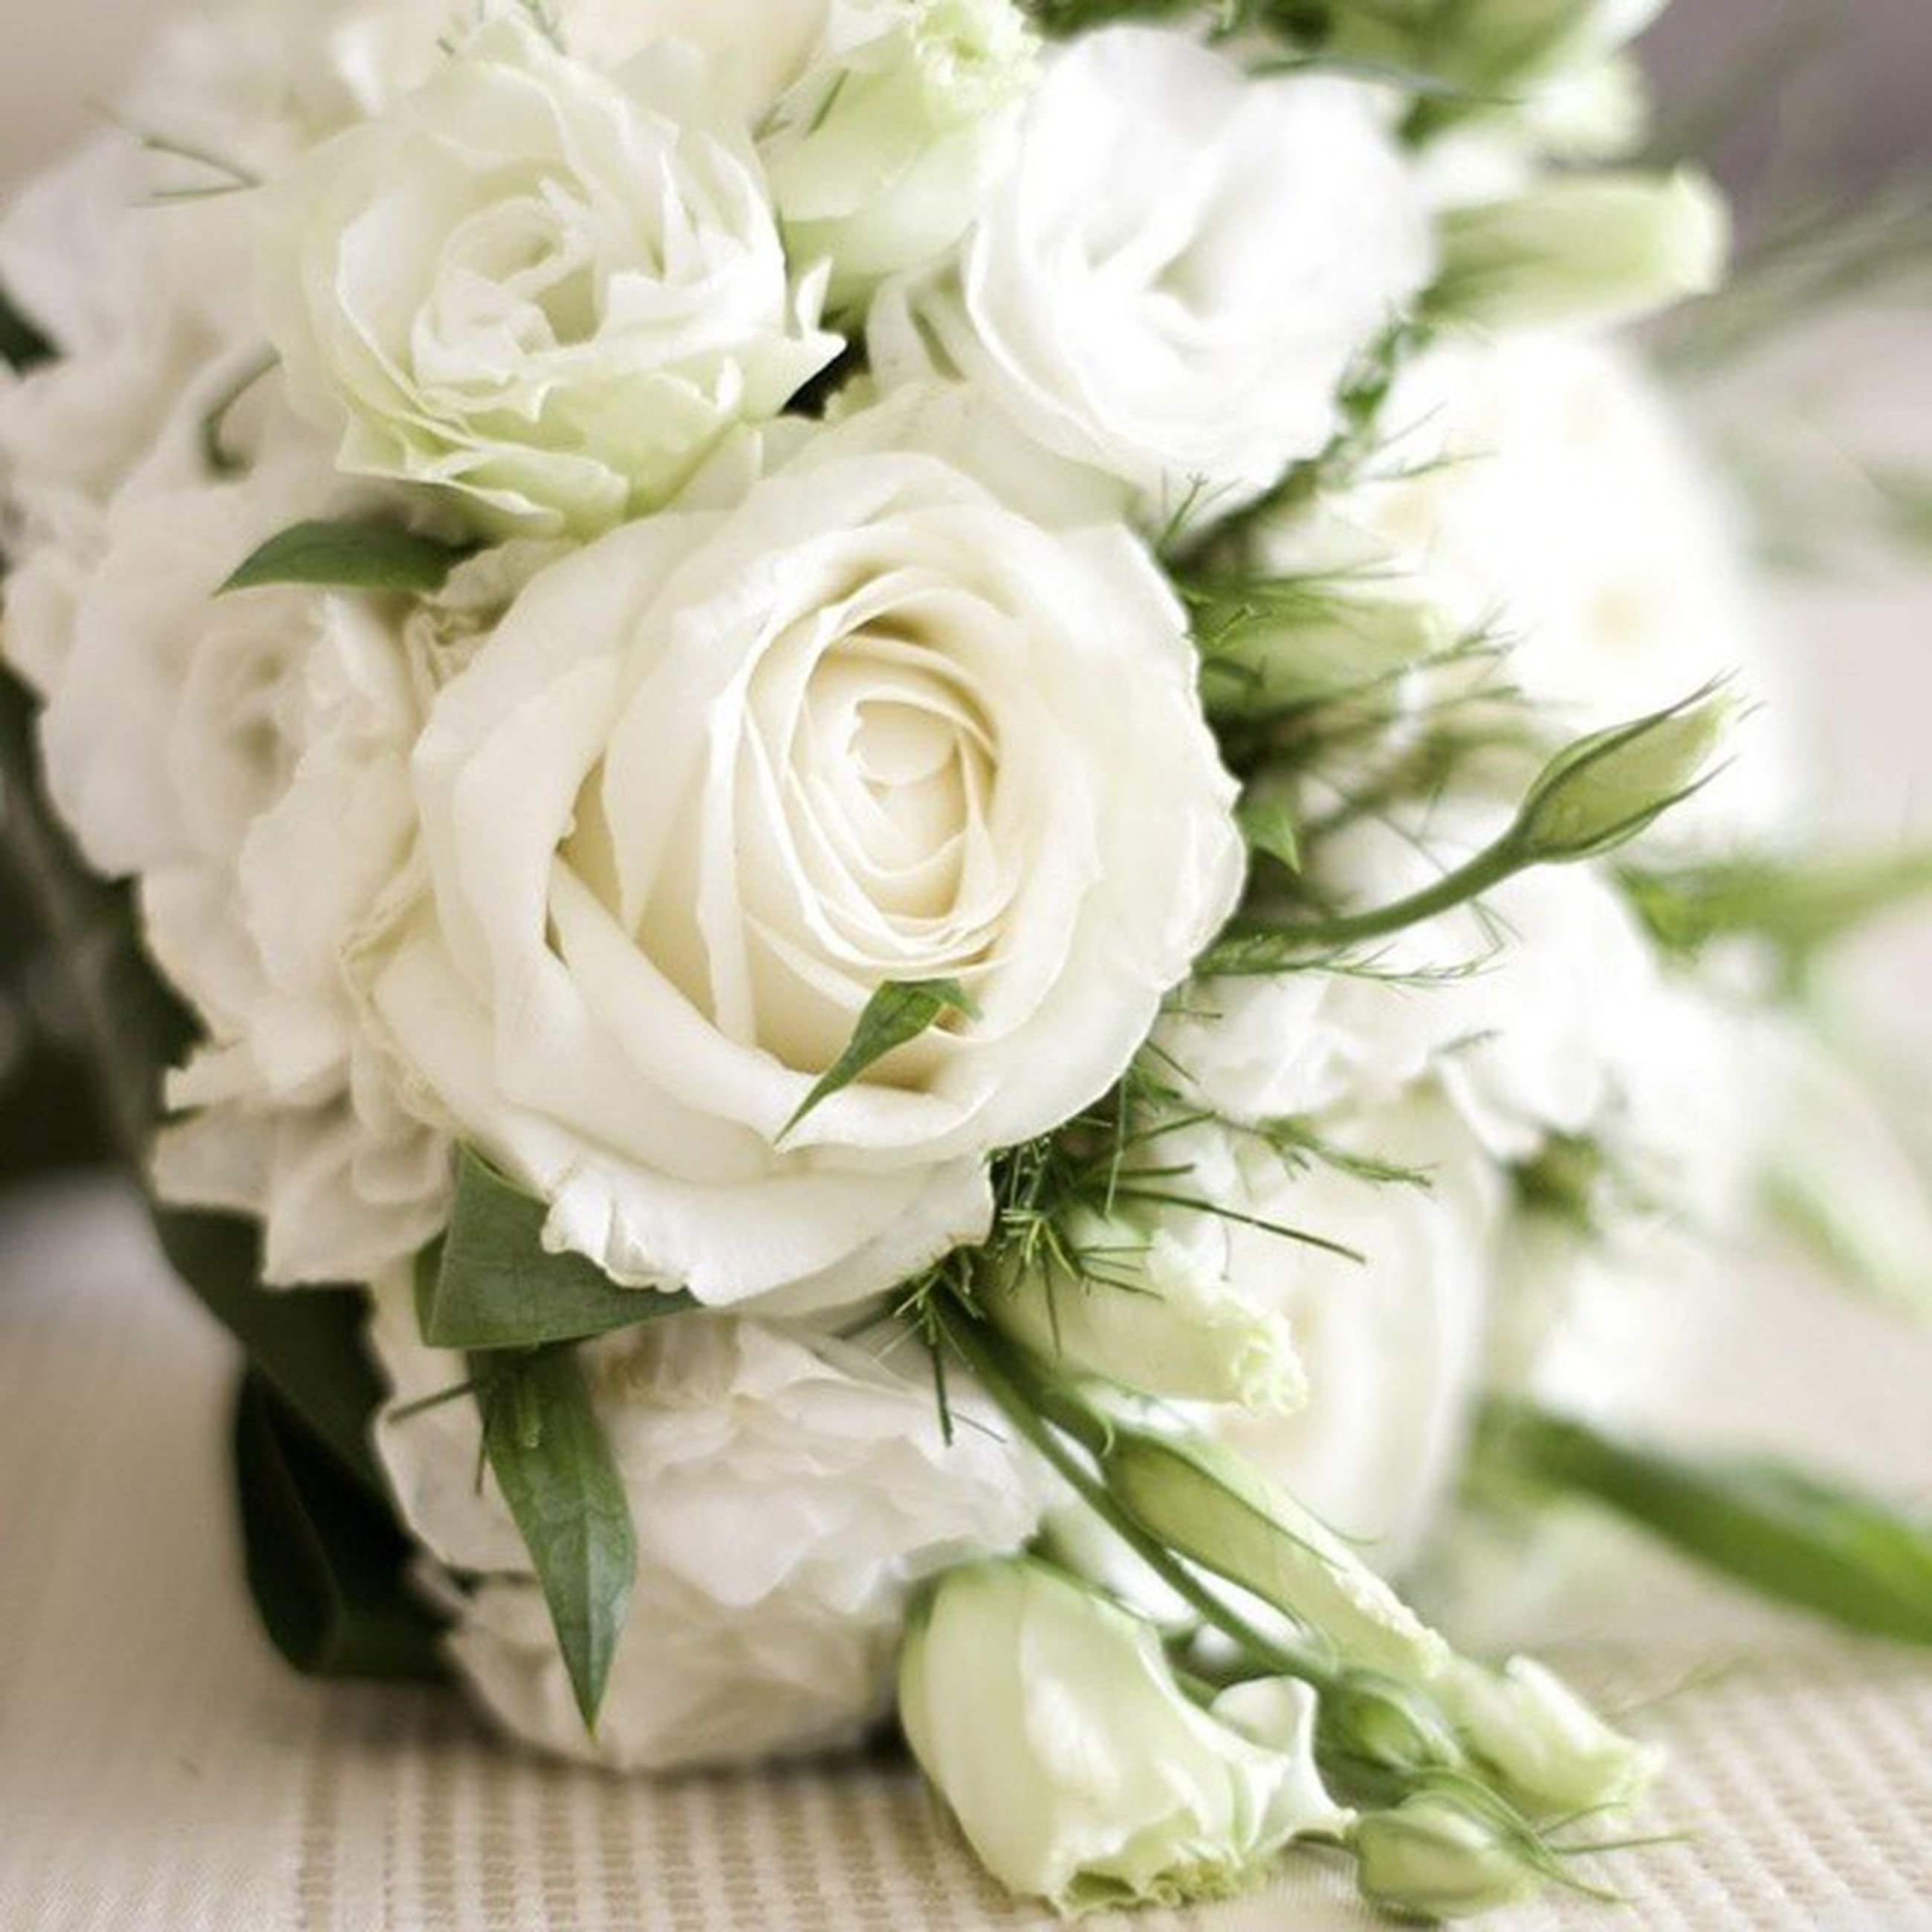 flower, freshness, fragility, petal, flower head, beauty in nature, growth, white color, close-up, bunch of flowers, nature, rose - flower, plant, indoors, blooming, focus on foreground, blossom, bouquet, leaf, high angle view